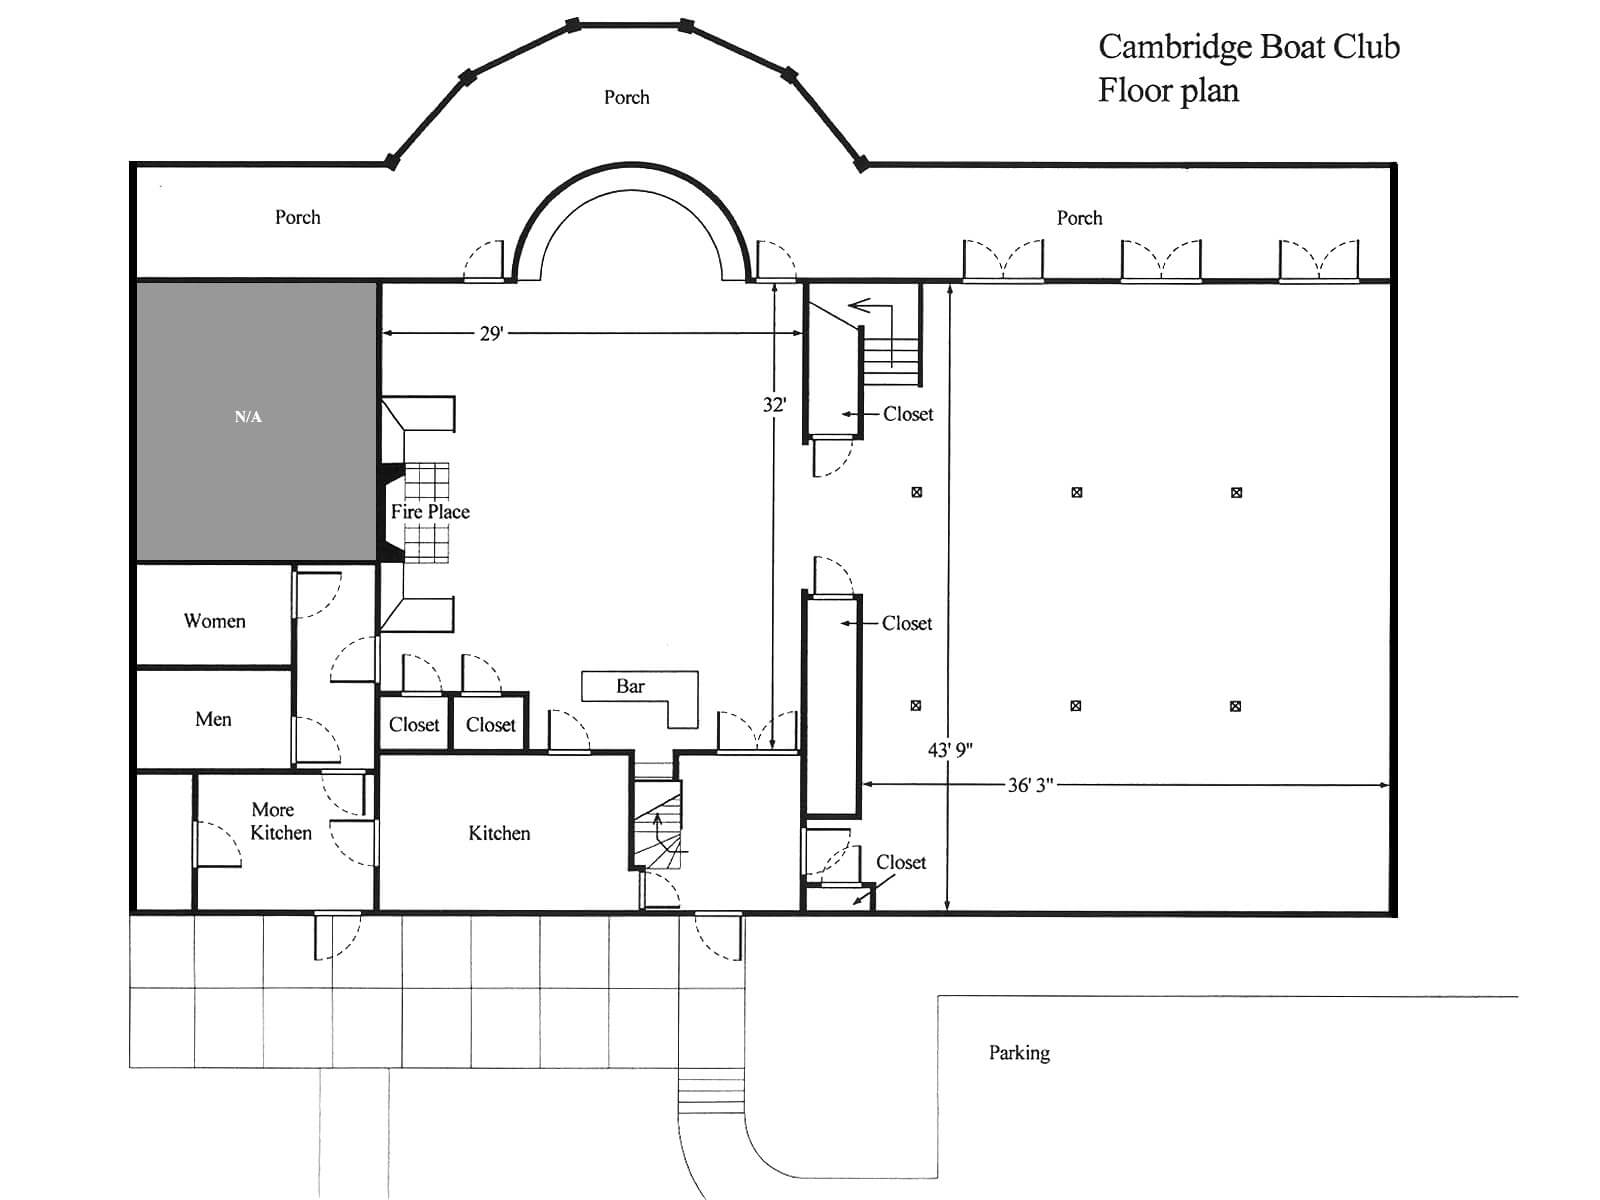 Floor plan of the cambridge boat club cambridge boat club Floor design